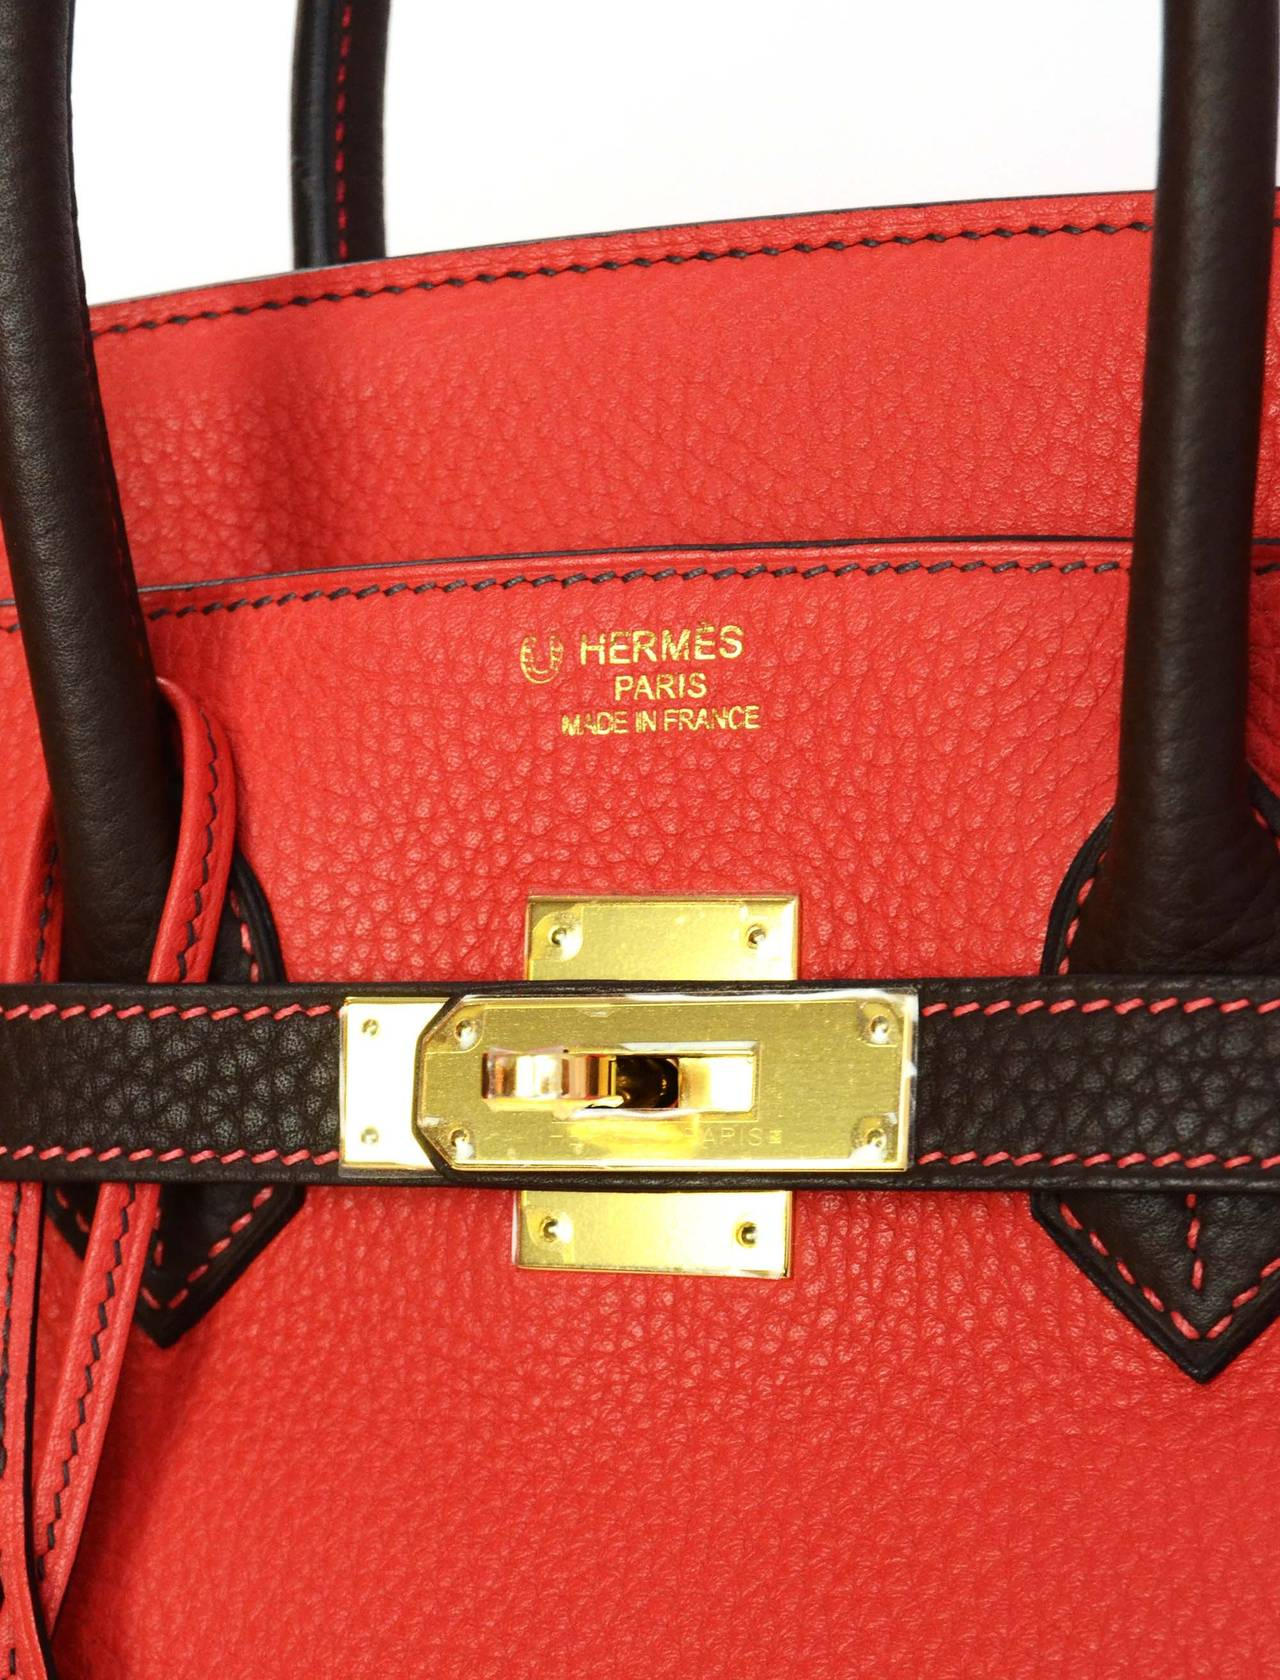 HERMES '15 SO Rouge Pivione/Cacao Red & Brown Togo Leather 35 cm Birkin Bag GHW 6